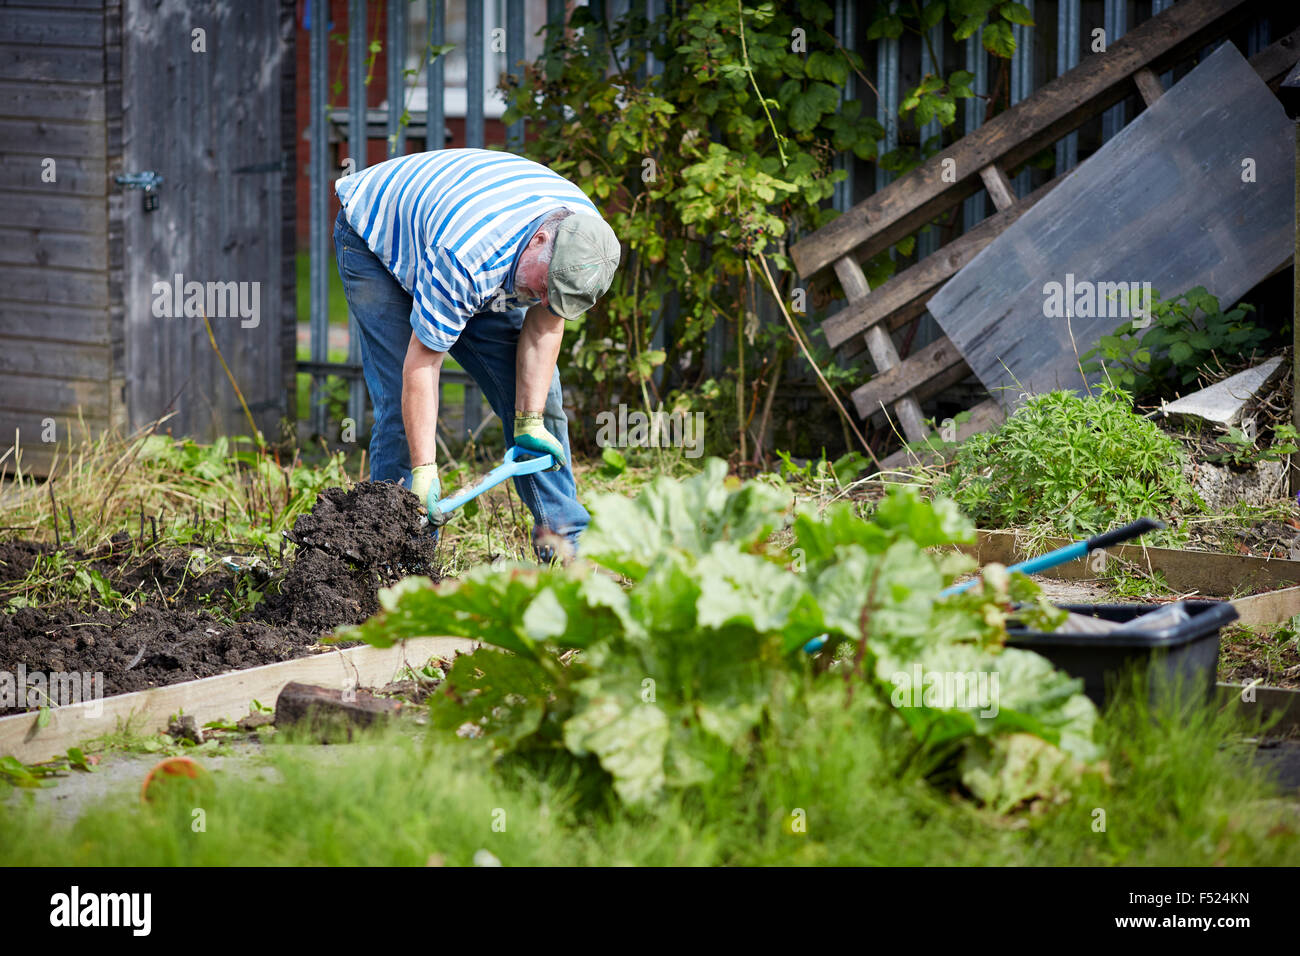 Affinity Sutton's Sunny Brow lounge in Gorton resident working on his allotment space gardening working hard - Stock Image